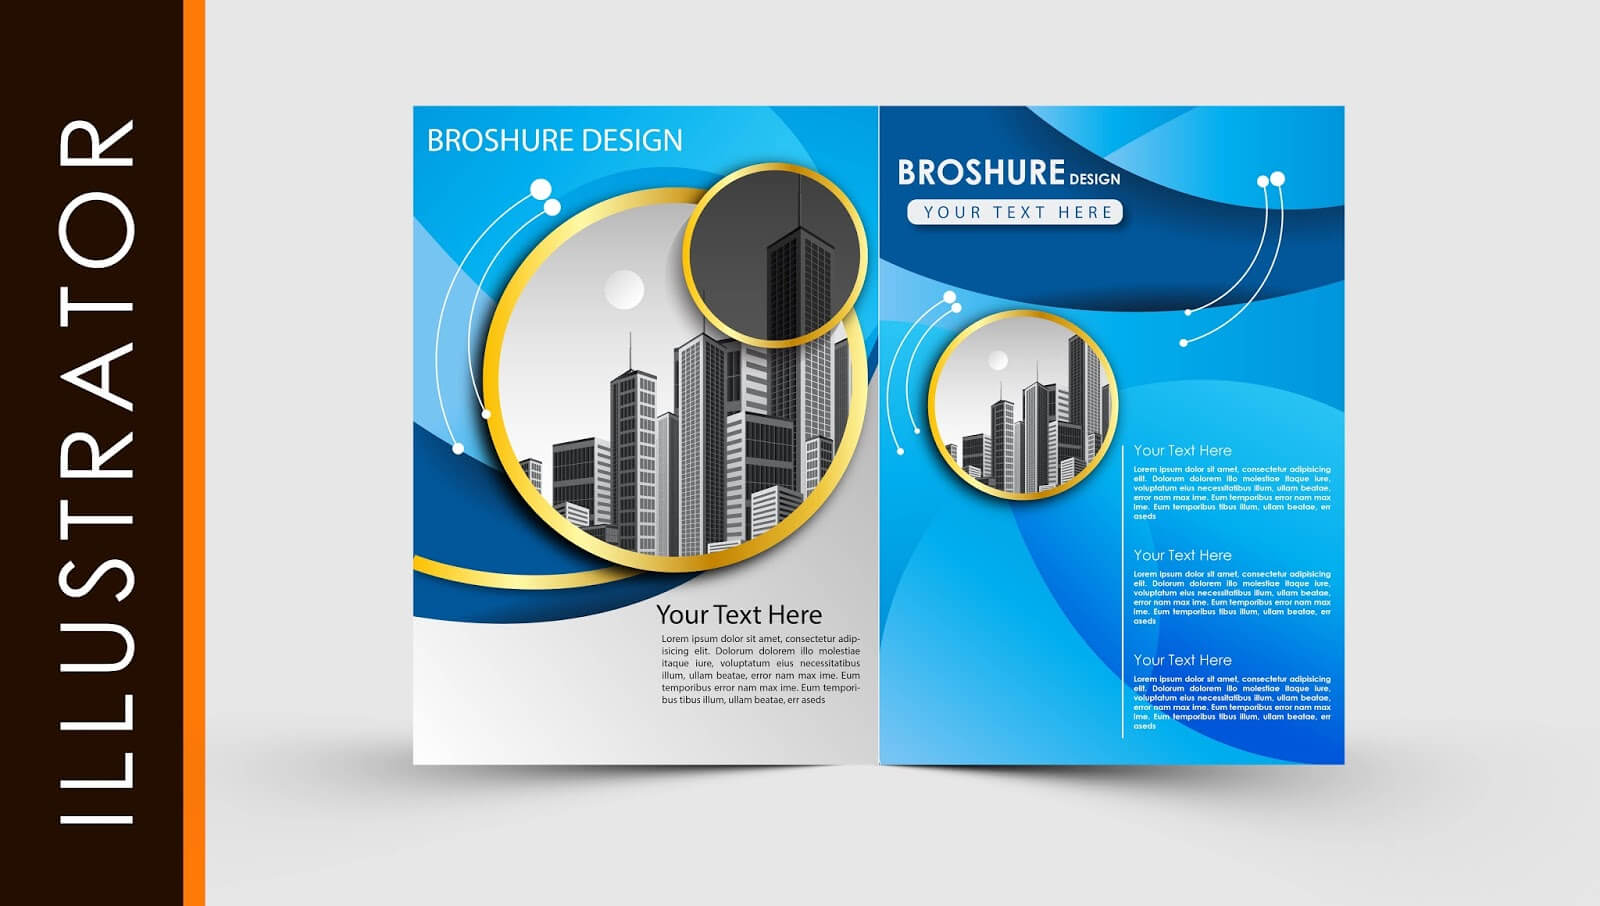 Free Download Adobe Illustrator Template Brochure Two Fold Inside Free Illustrator Brochure Templates Download